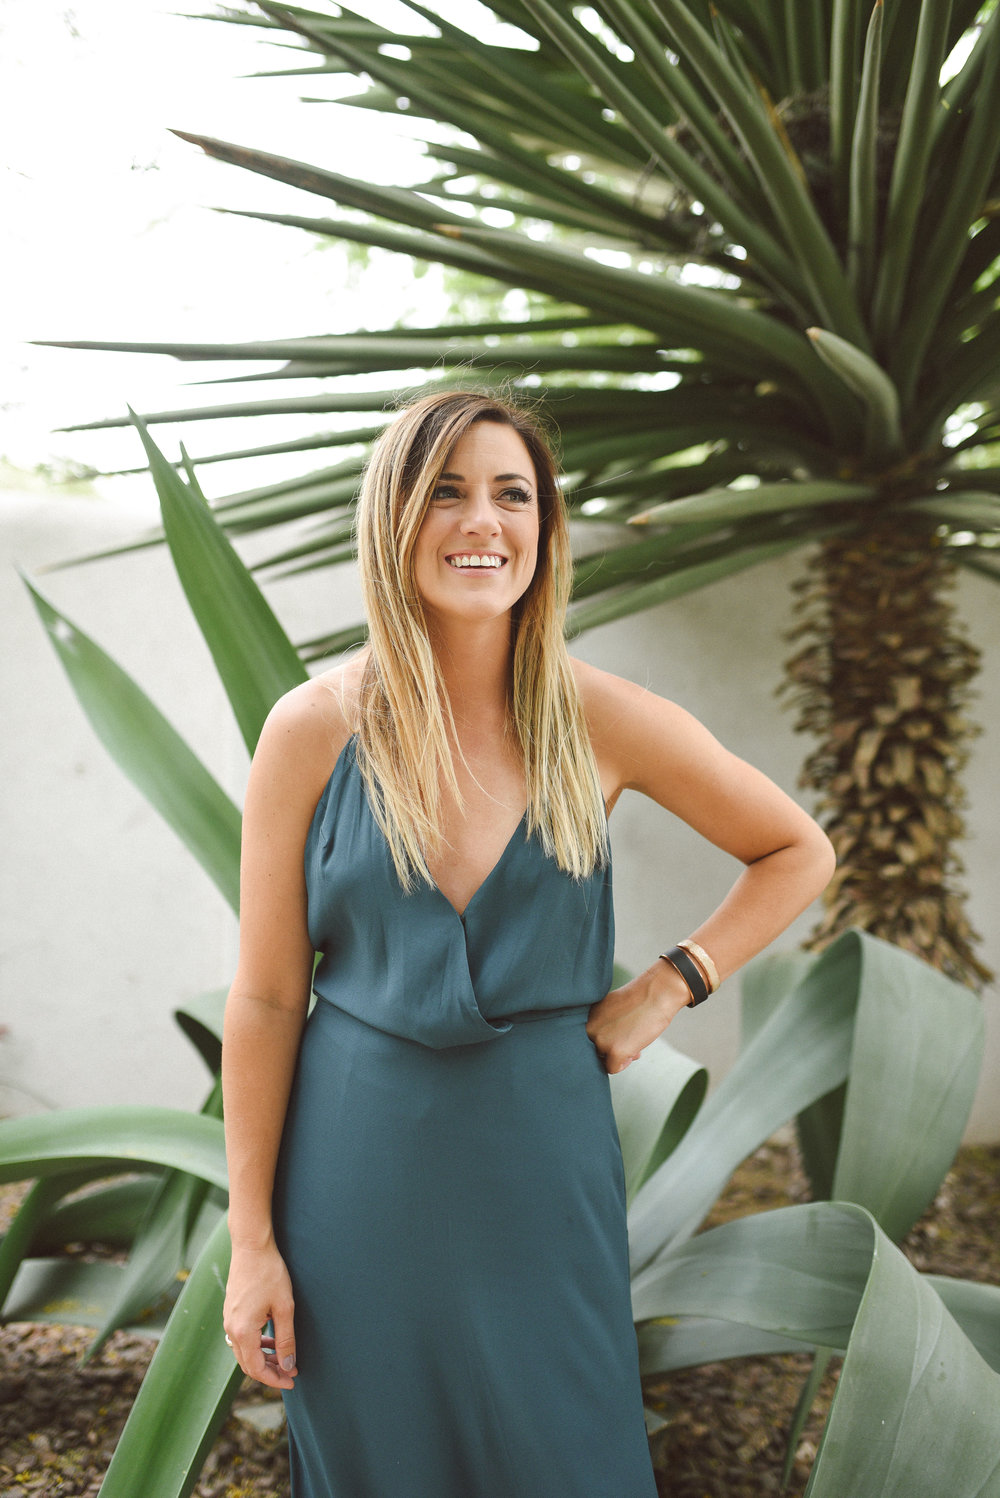 A flowy, jewel toned dress and minimal accessories leave all the attention on Brittany and her surroundings! With jewelry LESS IS MORE. Fun fact: I loved these custom cuffs so much, I ordered some for myself! Check the out  here .